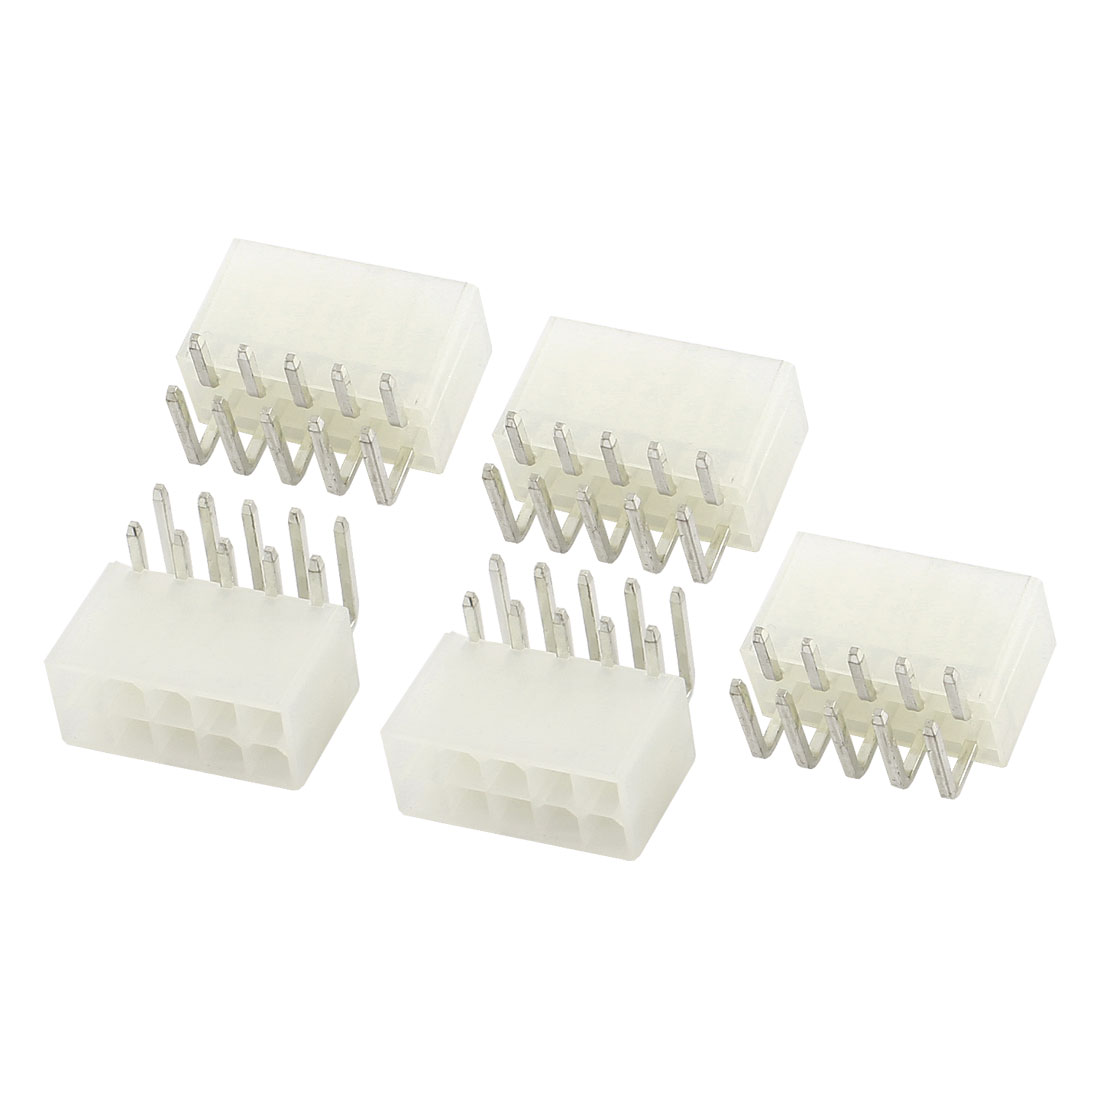 5 Pcs 10 Pin 90 Degree Terminal Power Supply PCB ATX Plug Connector Beige